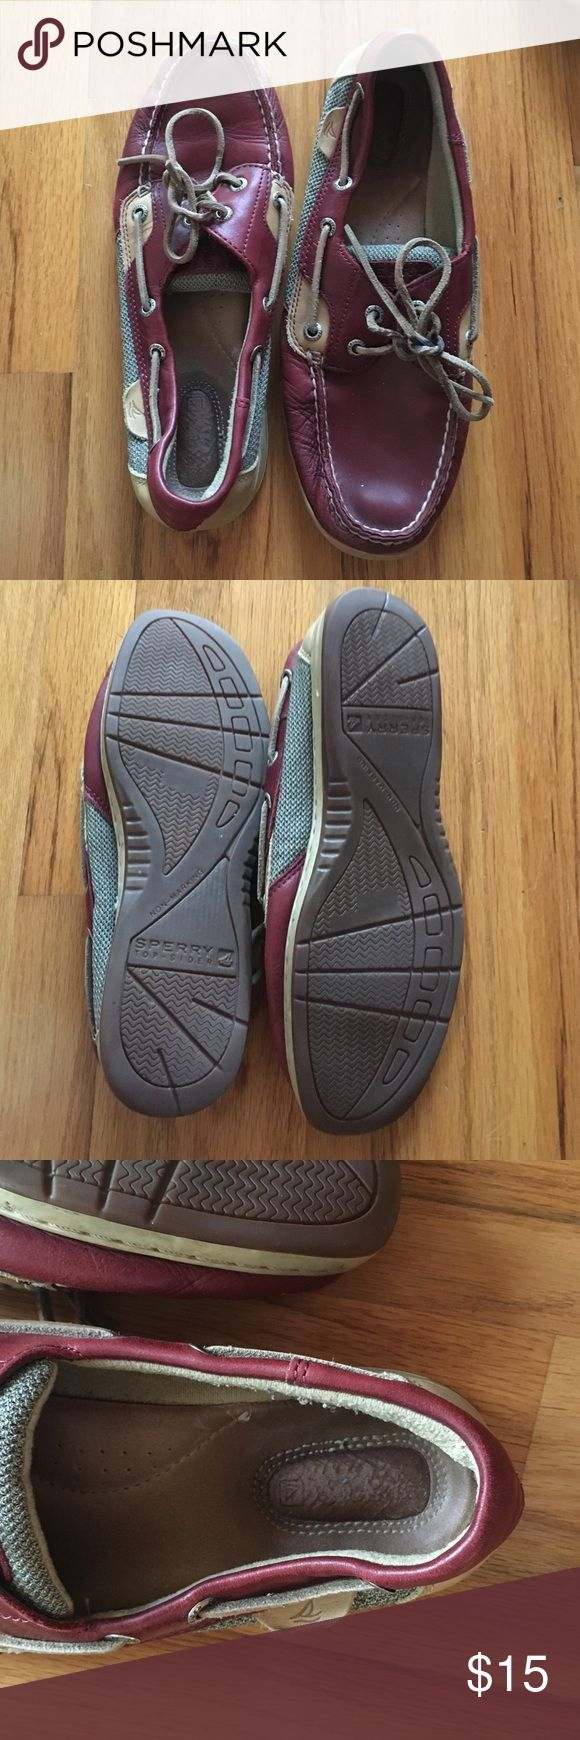 Sperry boat shoes Used boat shoes.  Worn indoors primarily. Strings are a bit of a mess. Price reflects. Also firm on price Sperry Top-Sider Shoes